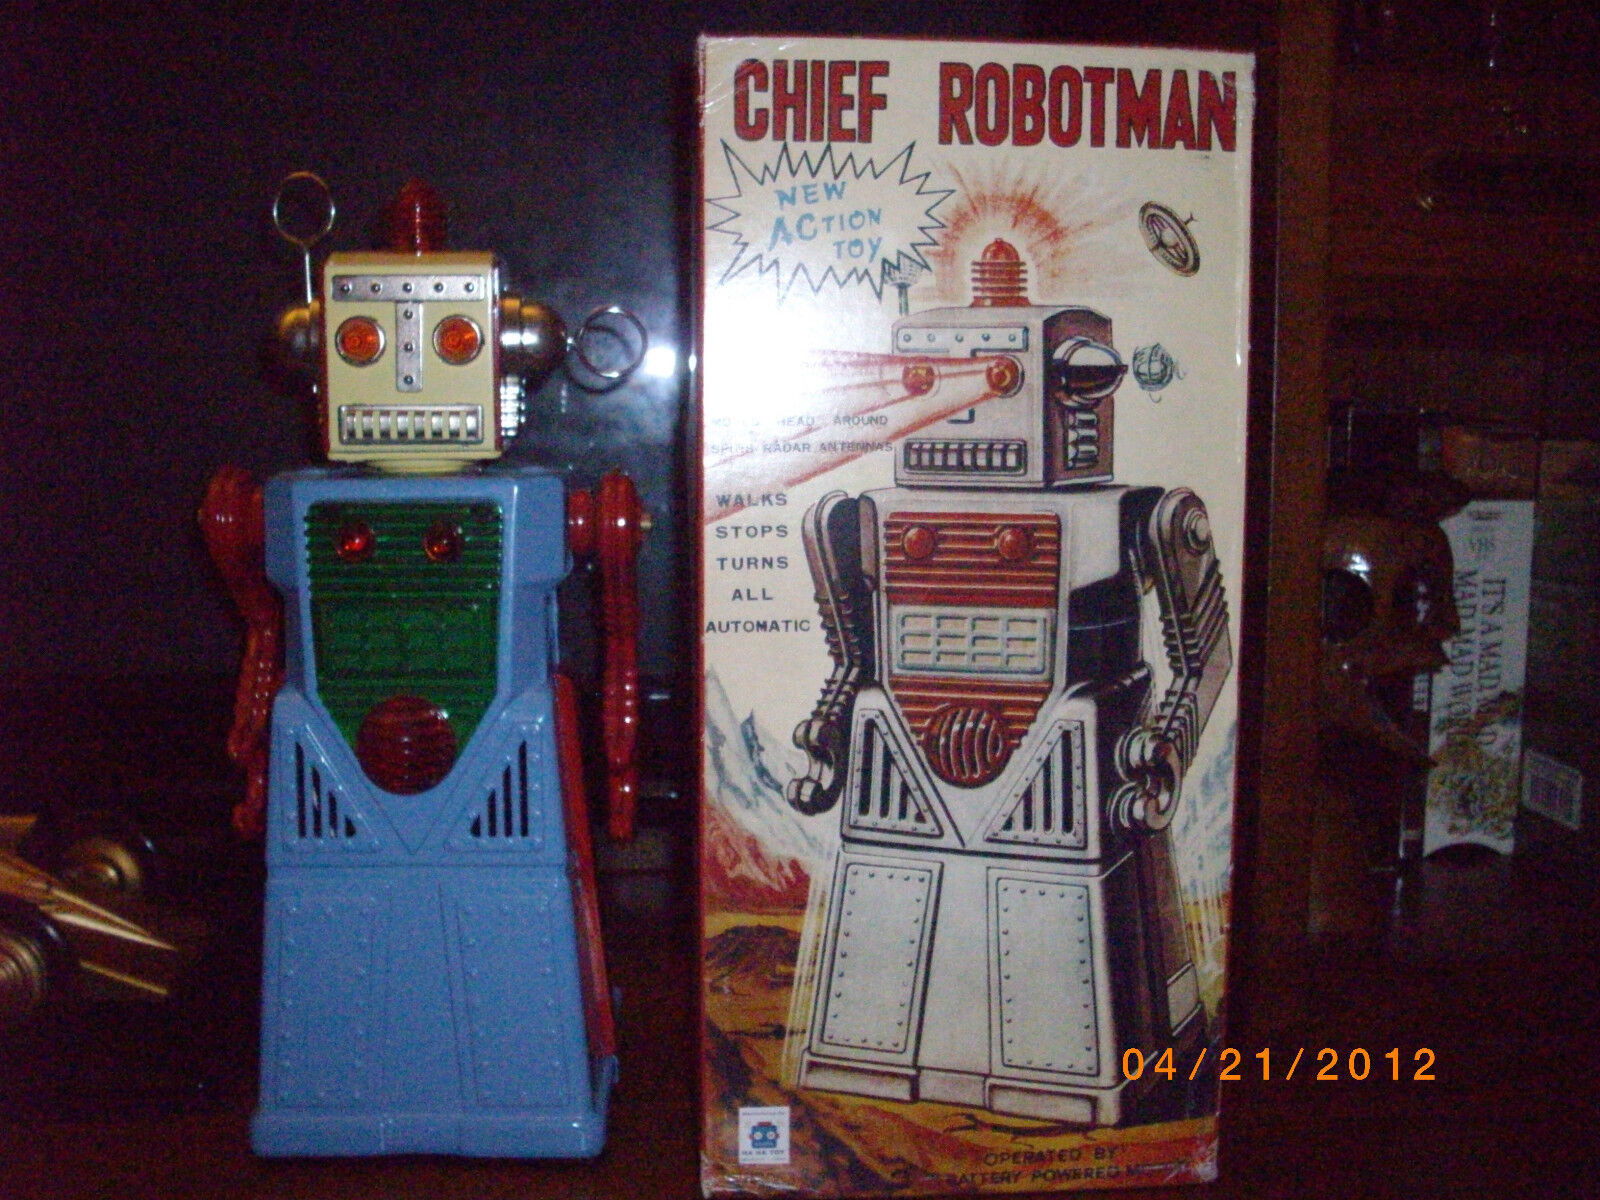 Chief Robotman Tin Battery Op Space Robot Light Blue Body Bump & Go Action